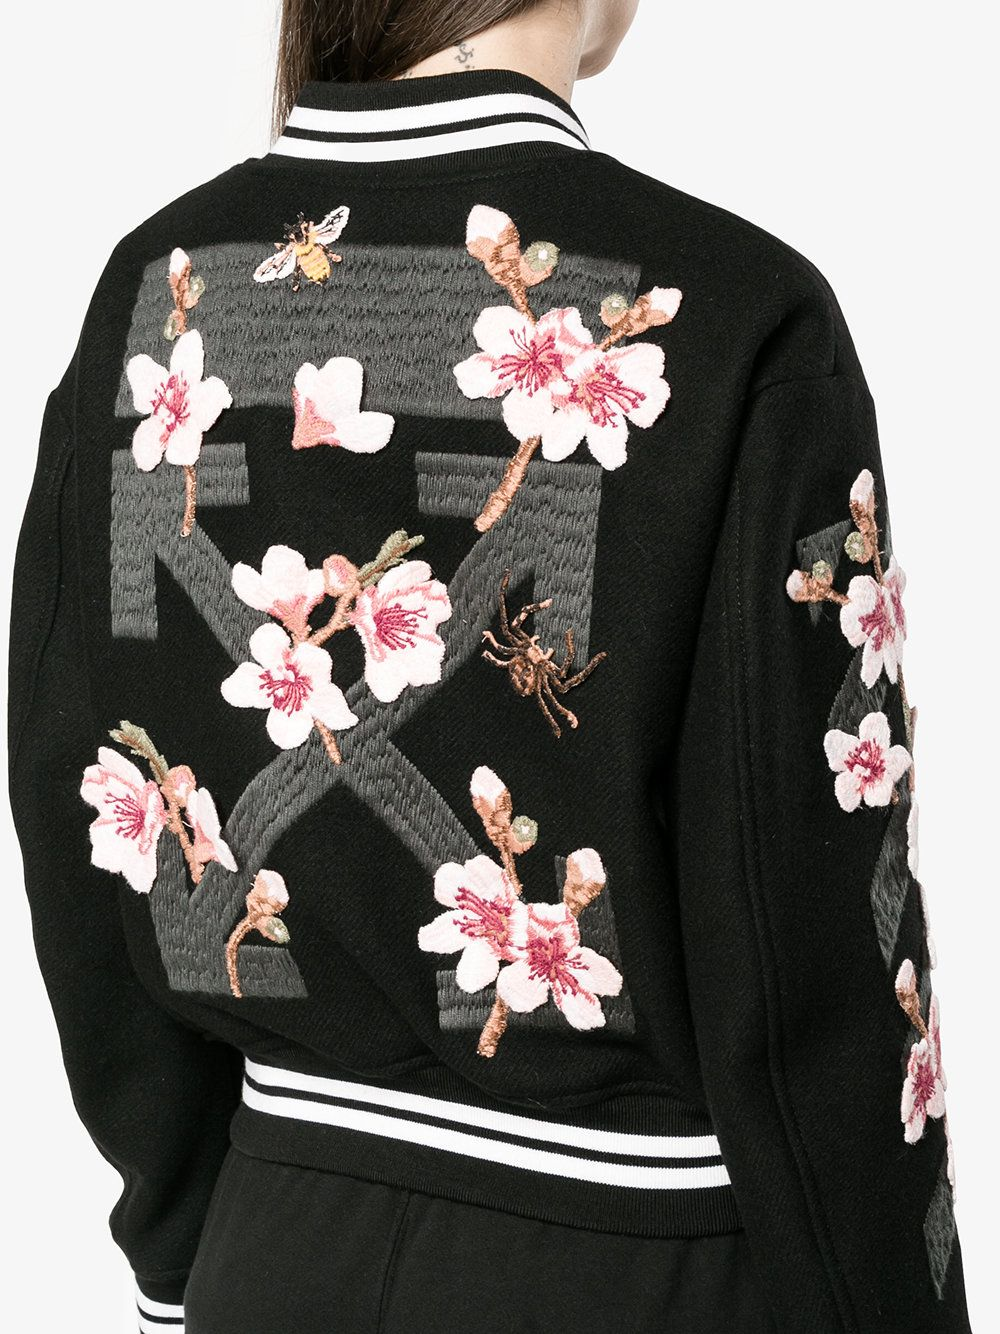 aeee020496c6 Off-White floral embroidered varsity jacket